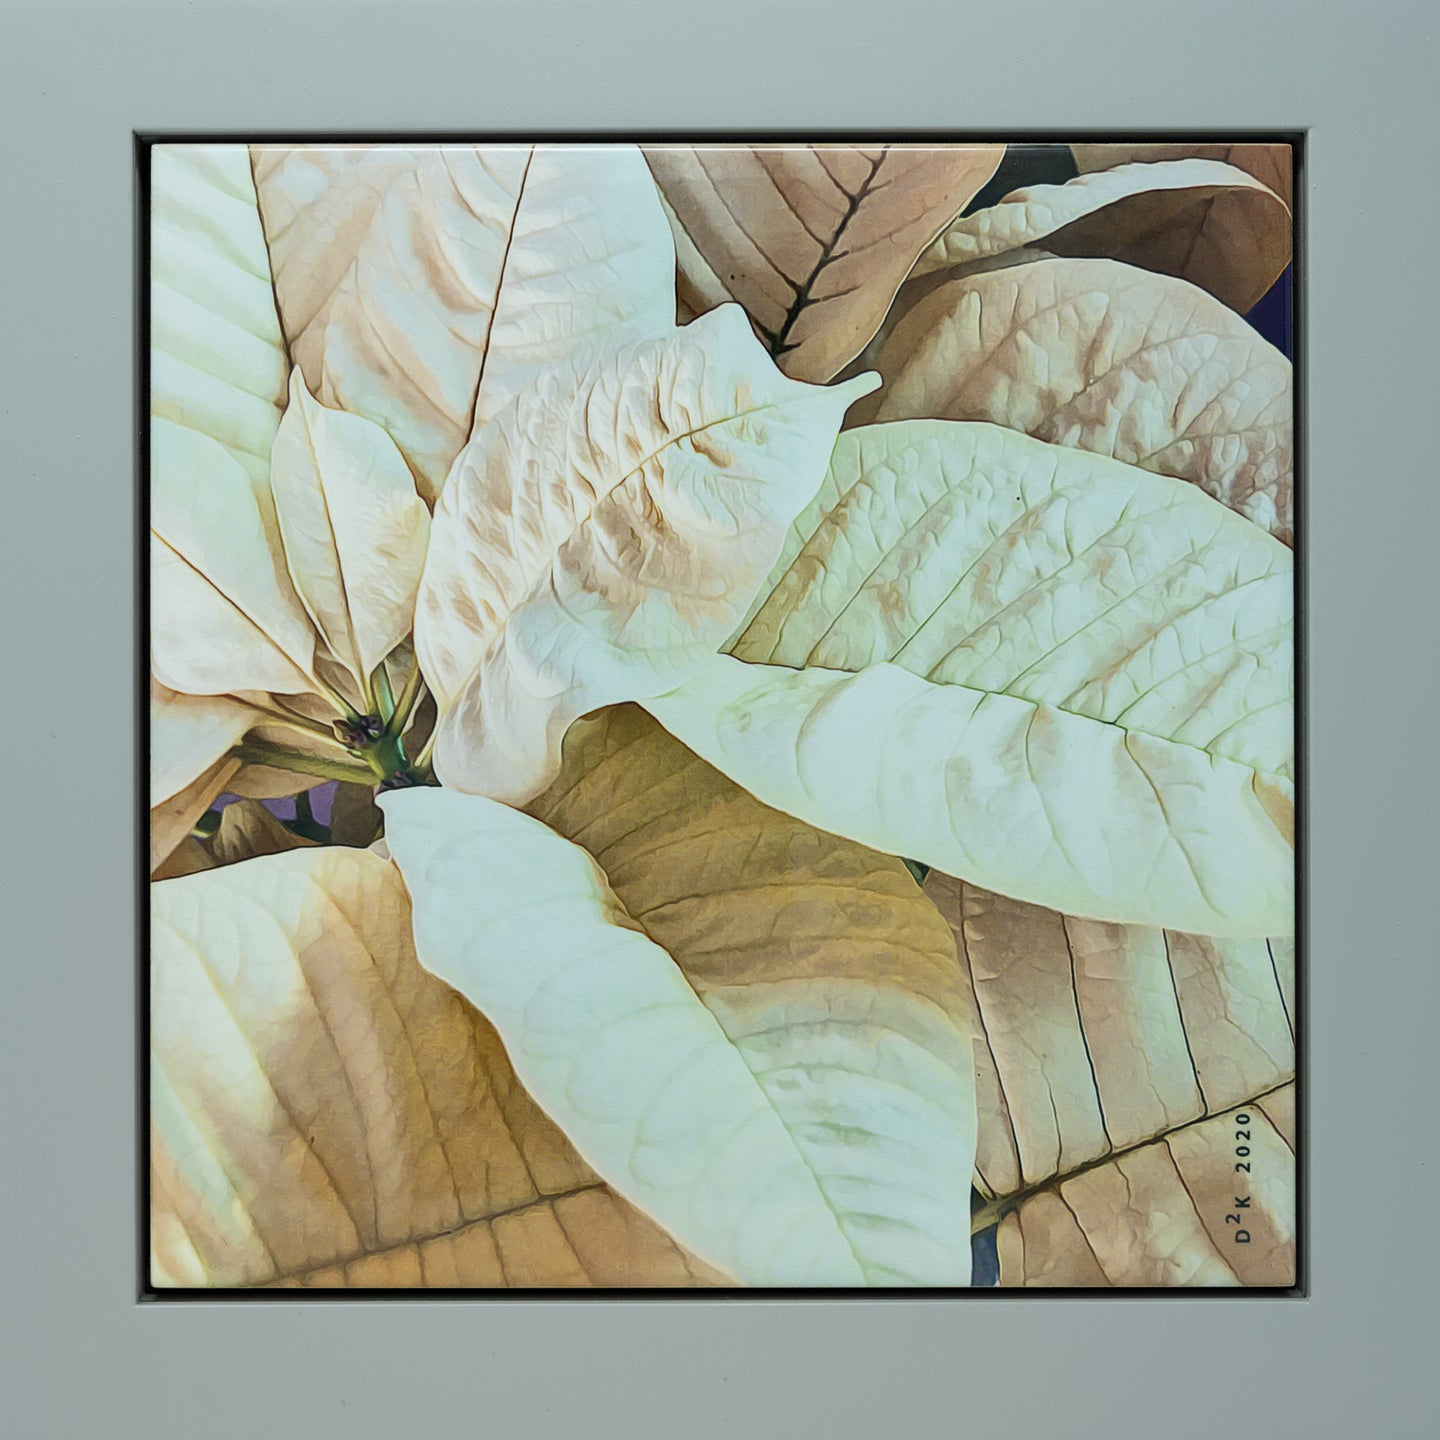 Framed Ceramic Photo Tile - White Poinsettia